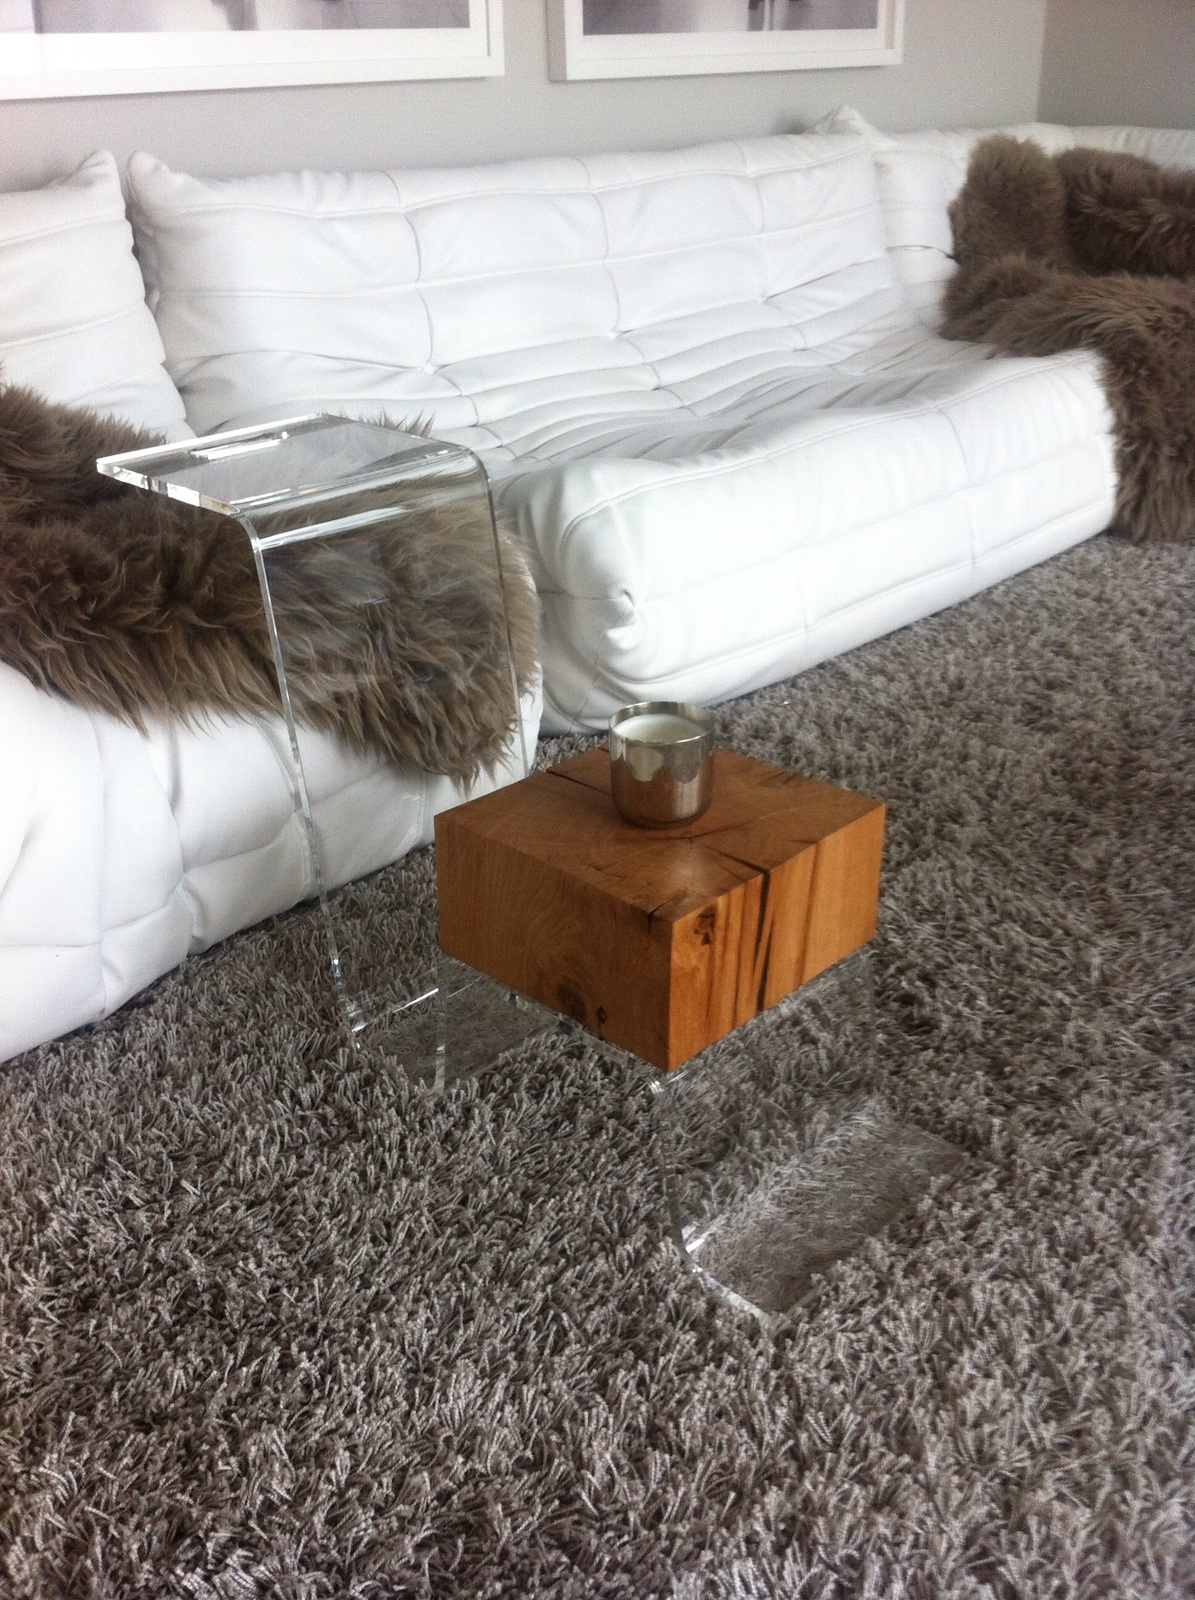 THE LINE PERSPEX Coffee Table - Pure Act of Modern Design